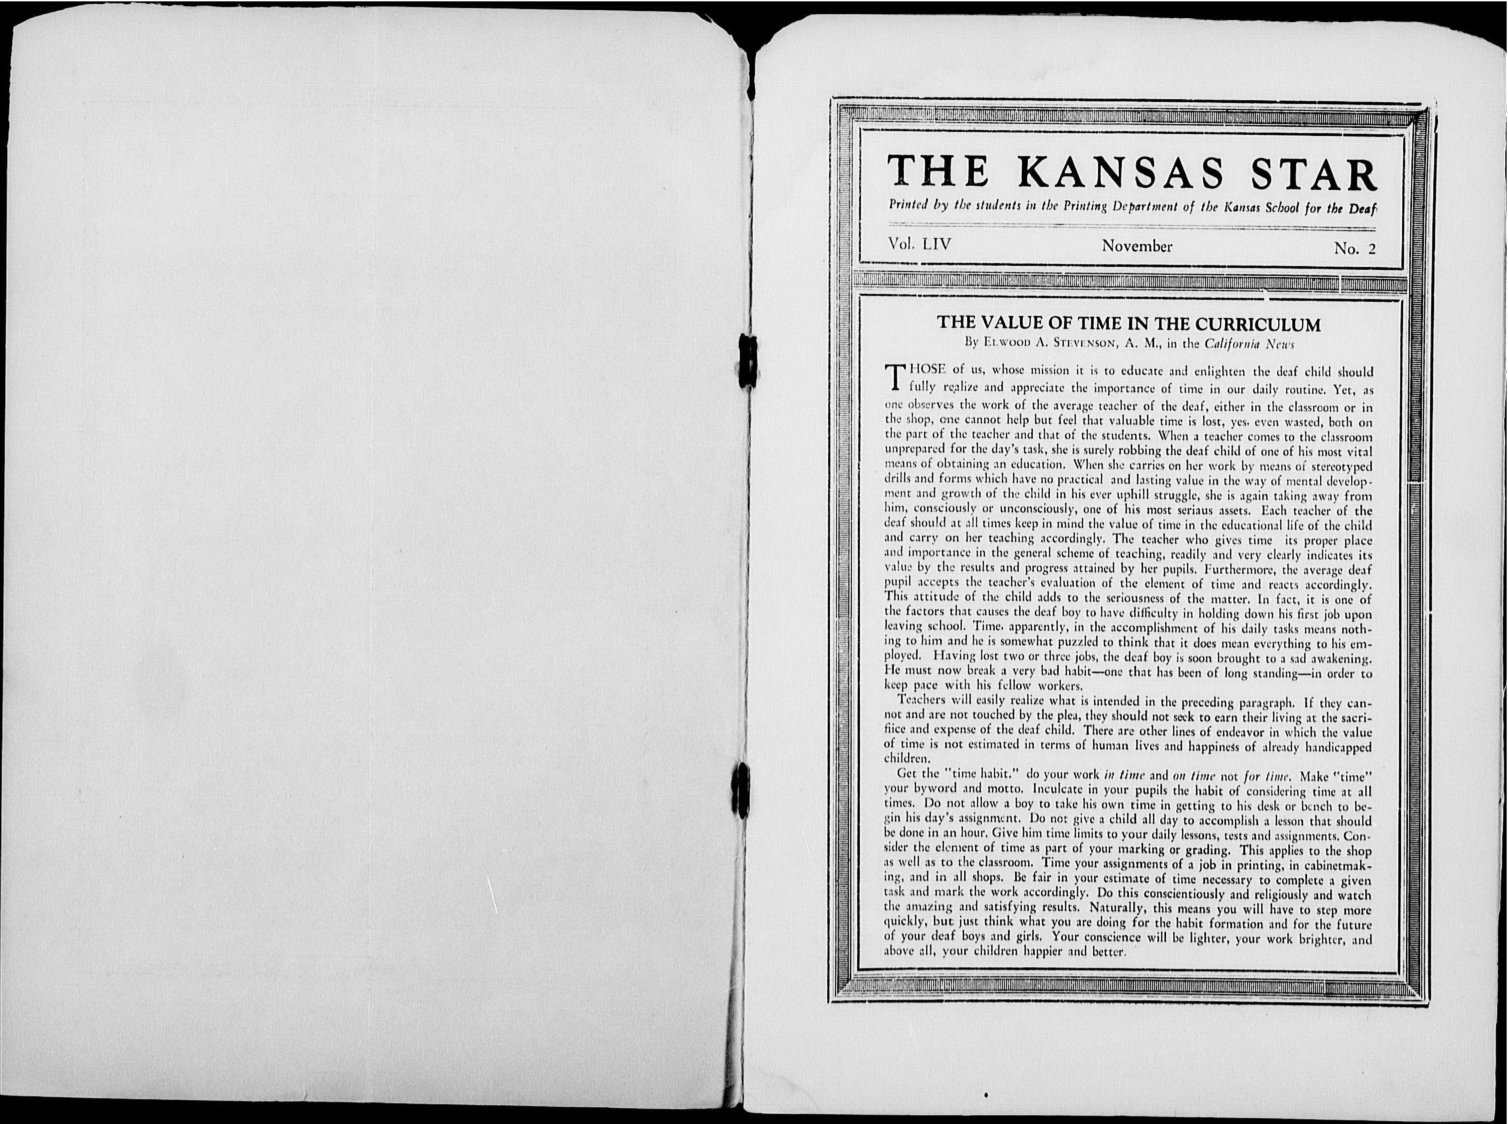 The Kansas Star, volume 44, number 2 - Inside cover-1